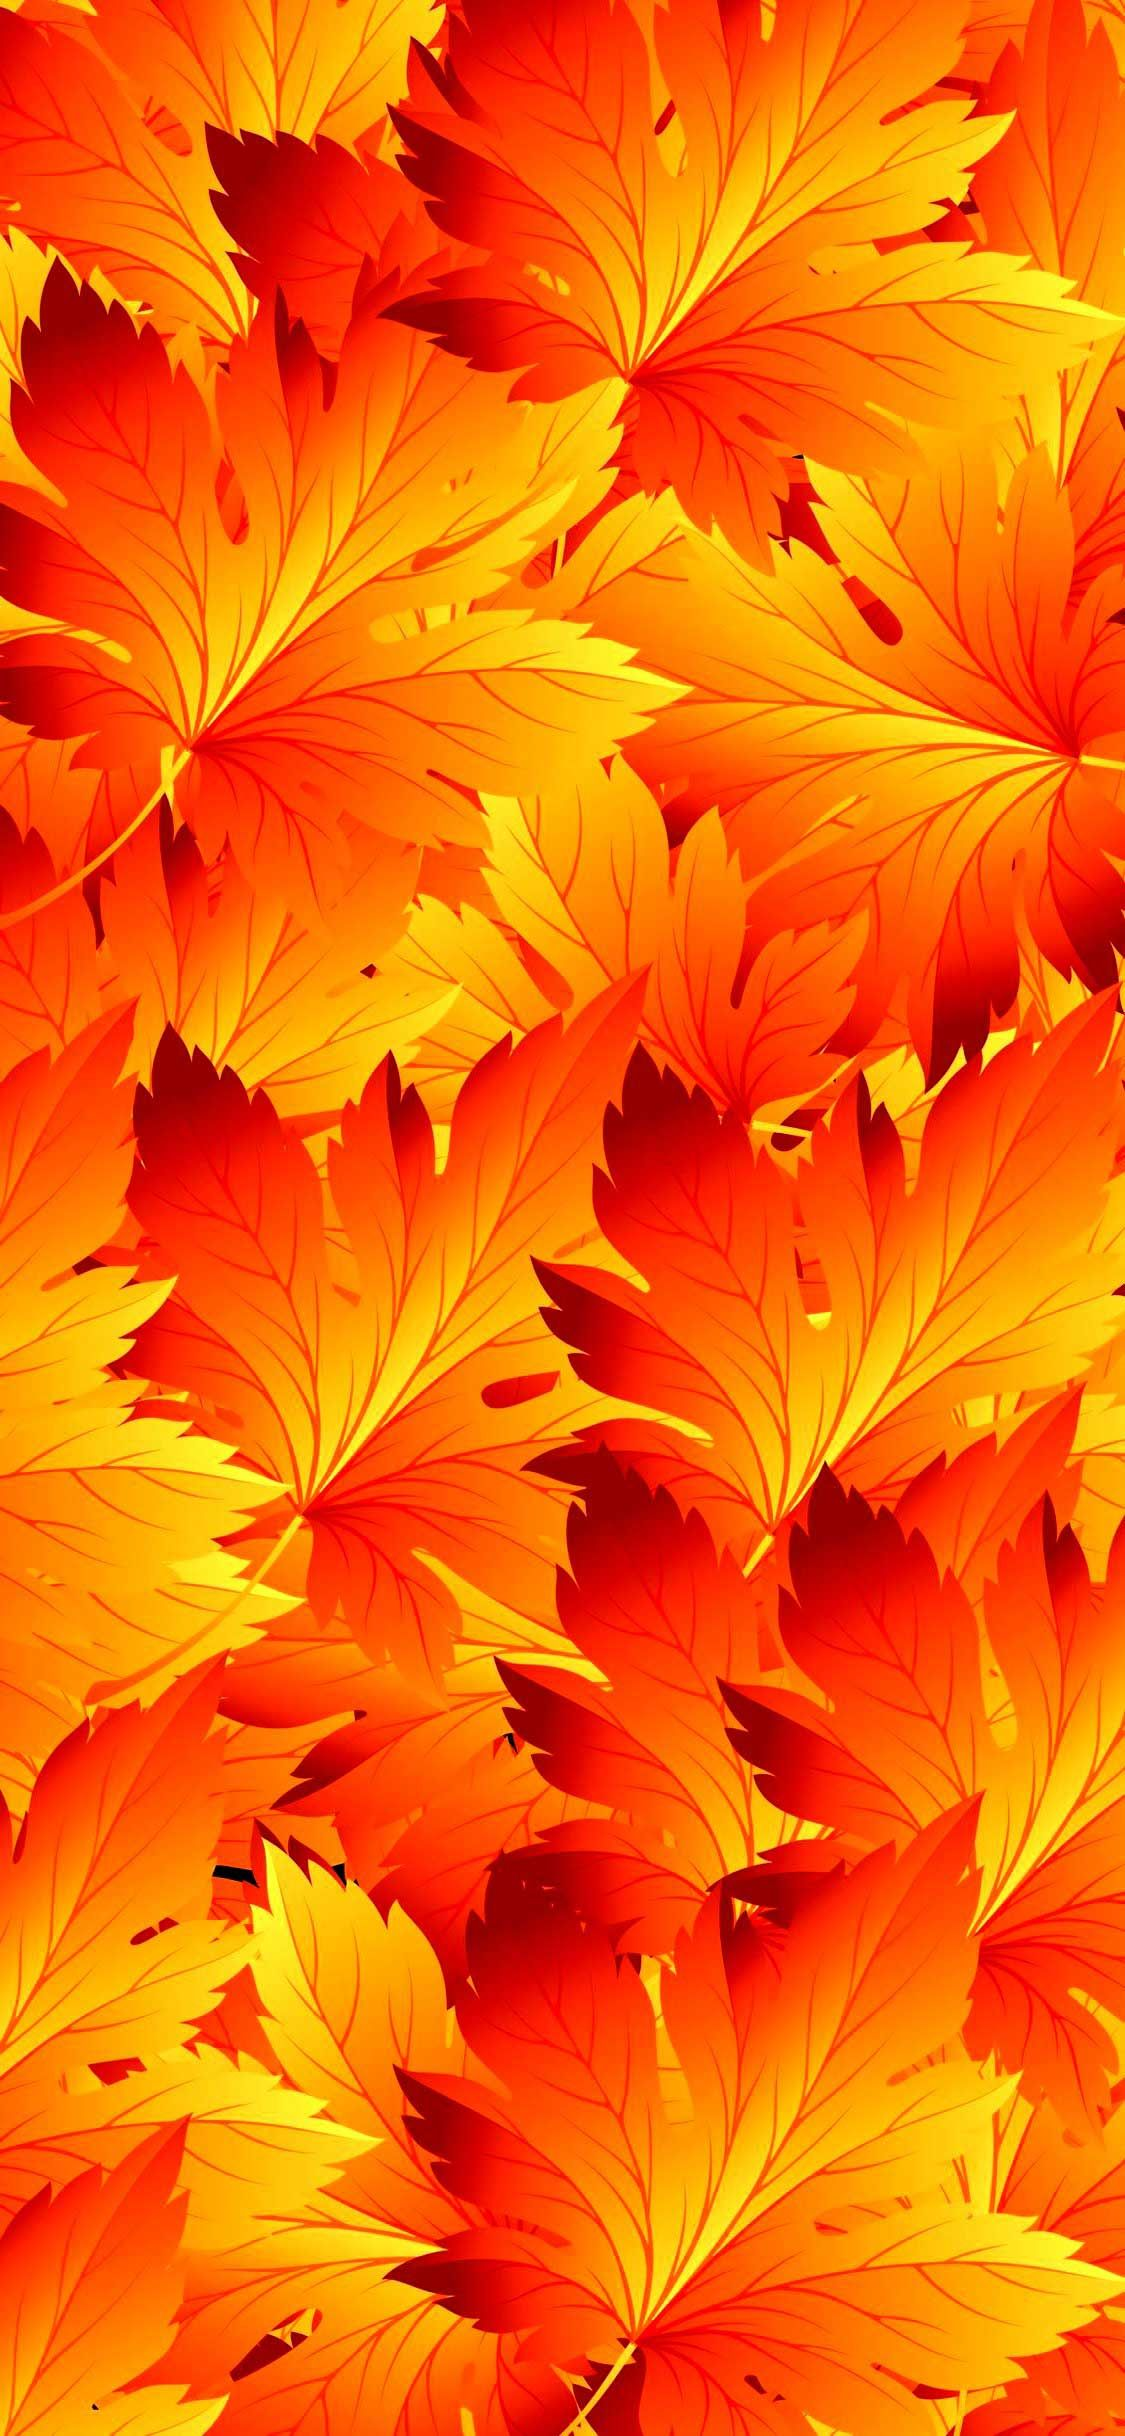 Iphone X Wallpaper Leaves patterns autumn Hd in 2020